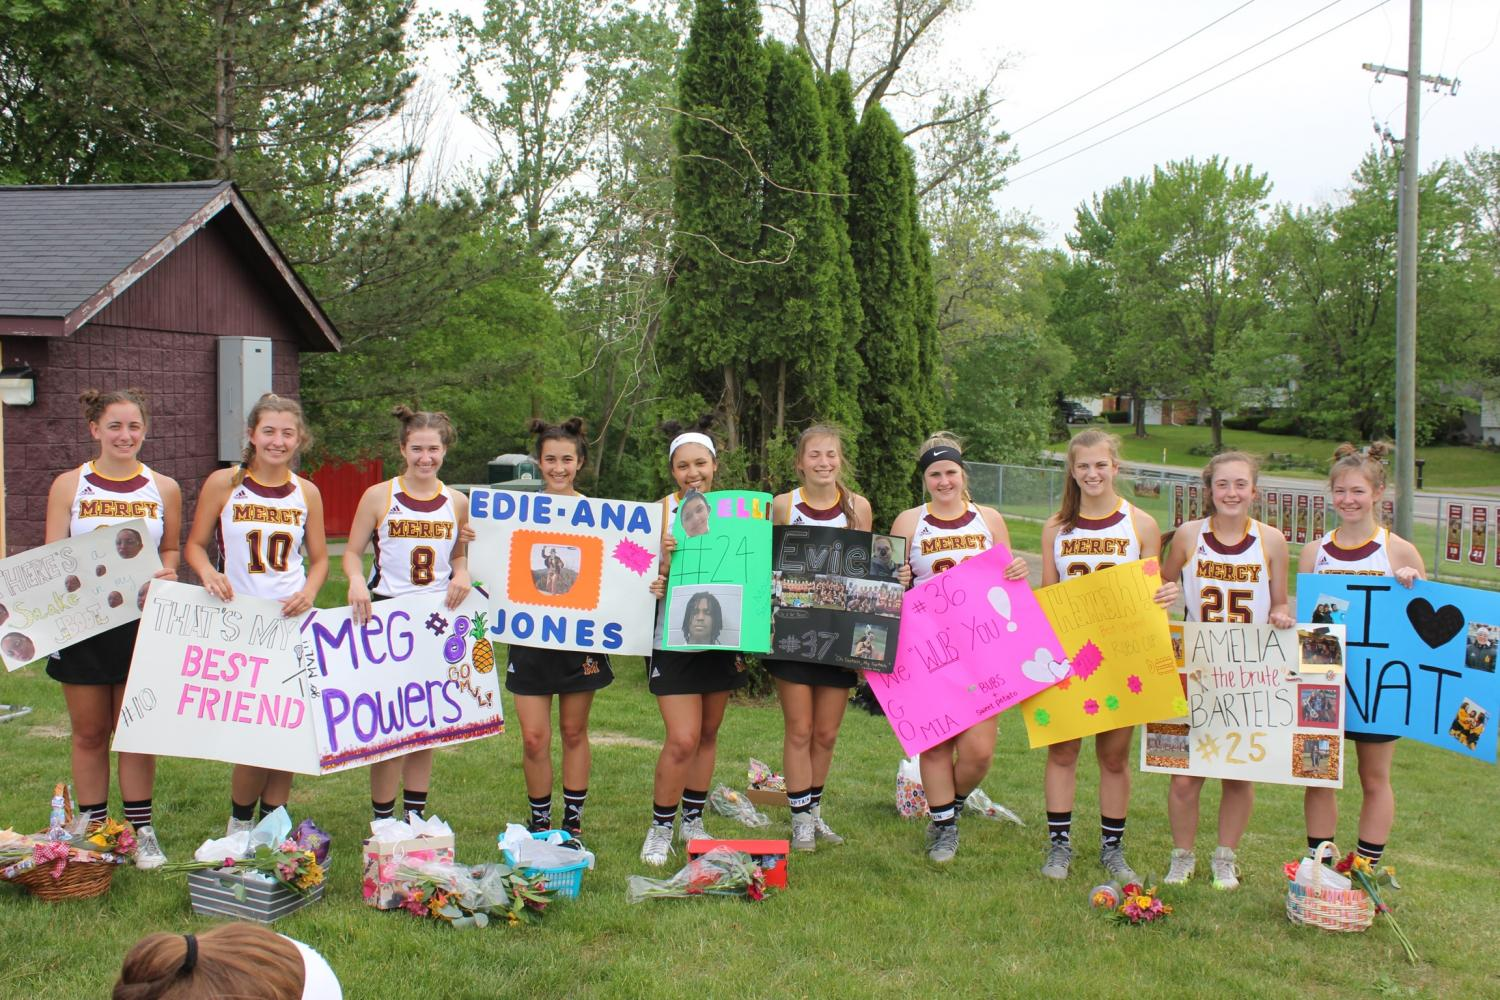 Mercy+Varsity+Lacrosse+seniors+hold+up+the+posters+their+fellow+teammates+have+given+them+on+senior+night.+%28From+right+to+left%3A+Ciara+Lopus%2C+Emma+Easson%2C+Meg+Powers%2C+Edie+Jones%2C+Ellie+Gouvia+%2C+Evie+Drukker%2C+Maria+Bowen%2C+Hannah+Roegner%2C+Amelia+Bartels%2C+Natalie+Masopust%29+%28Photo+courtesy+of%3A+Amelia+Bartels%29+